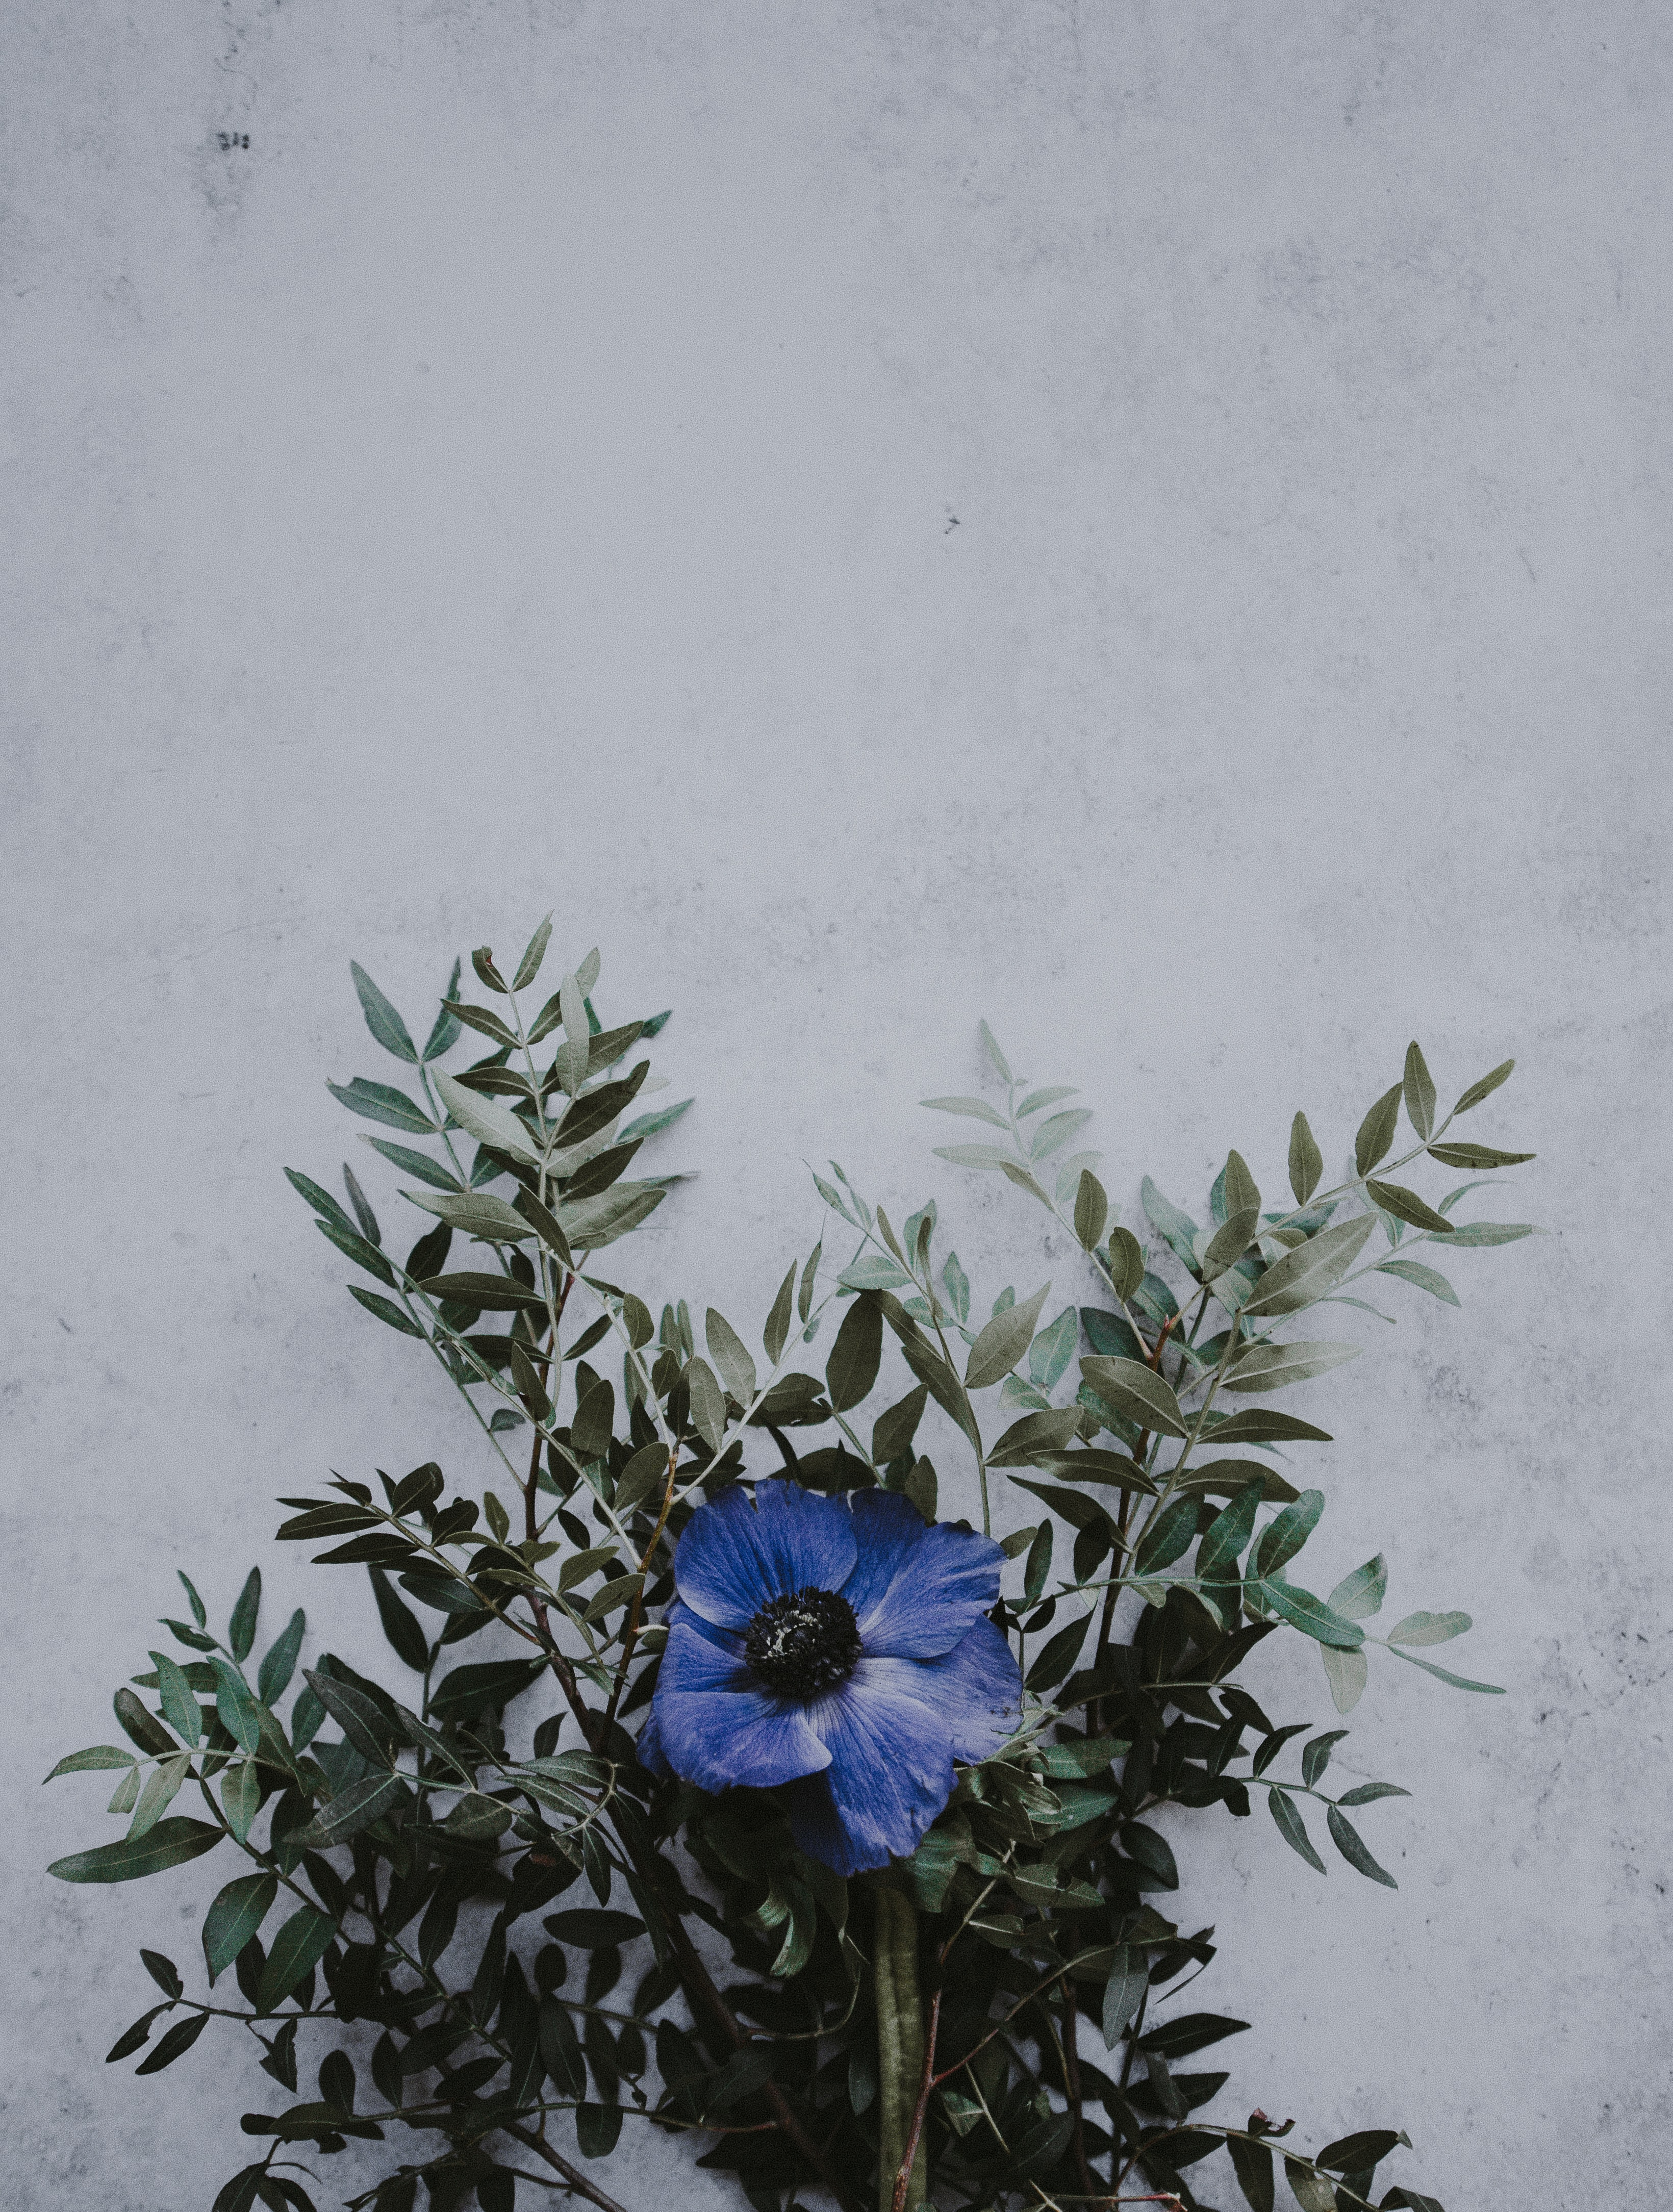 blue petaled flowers near wall